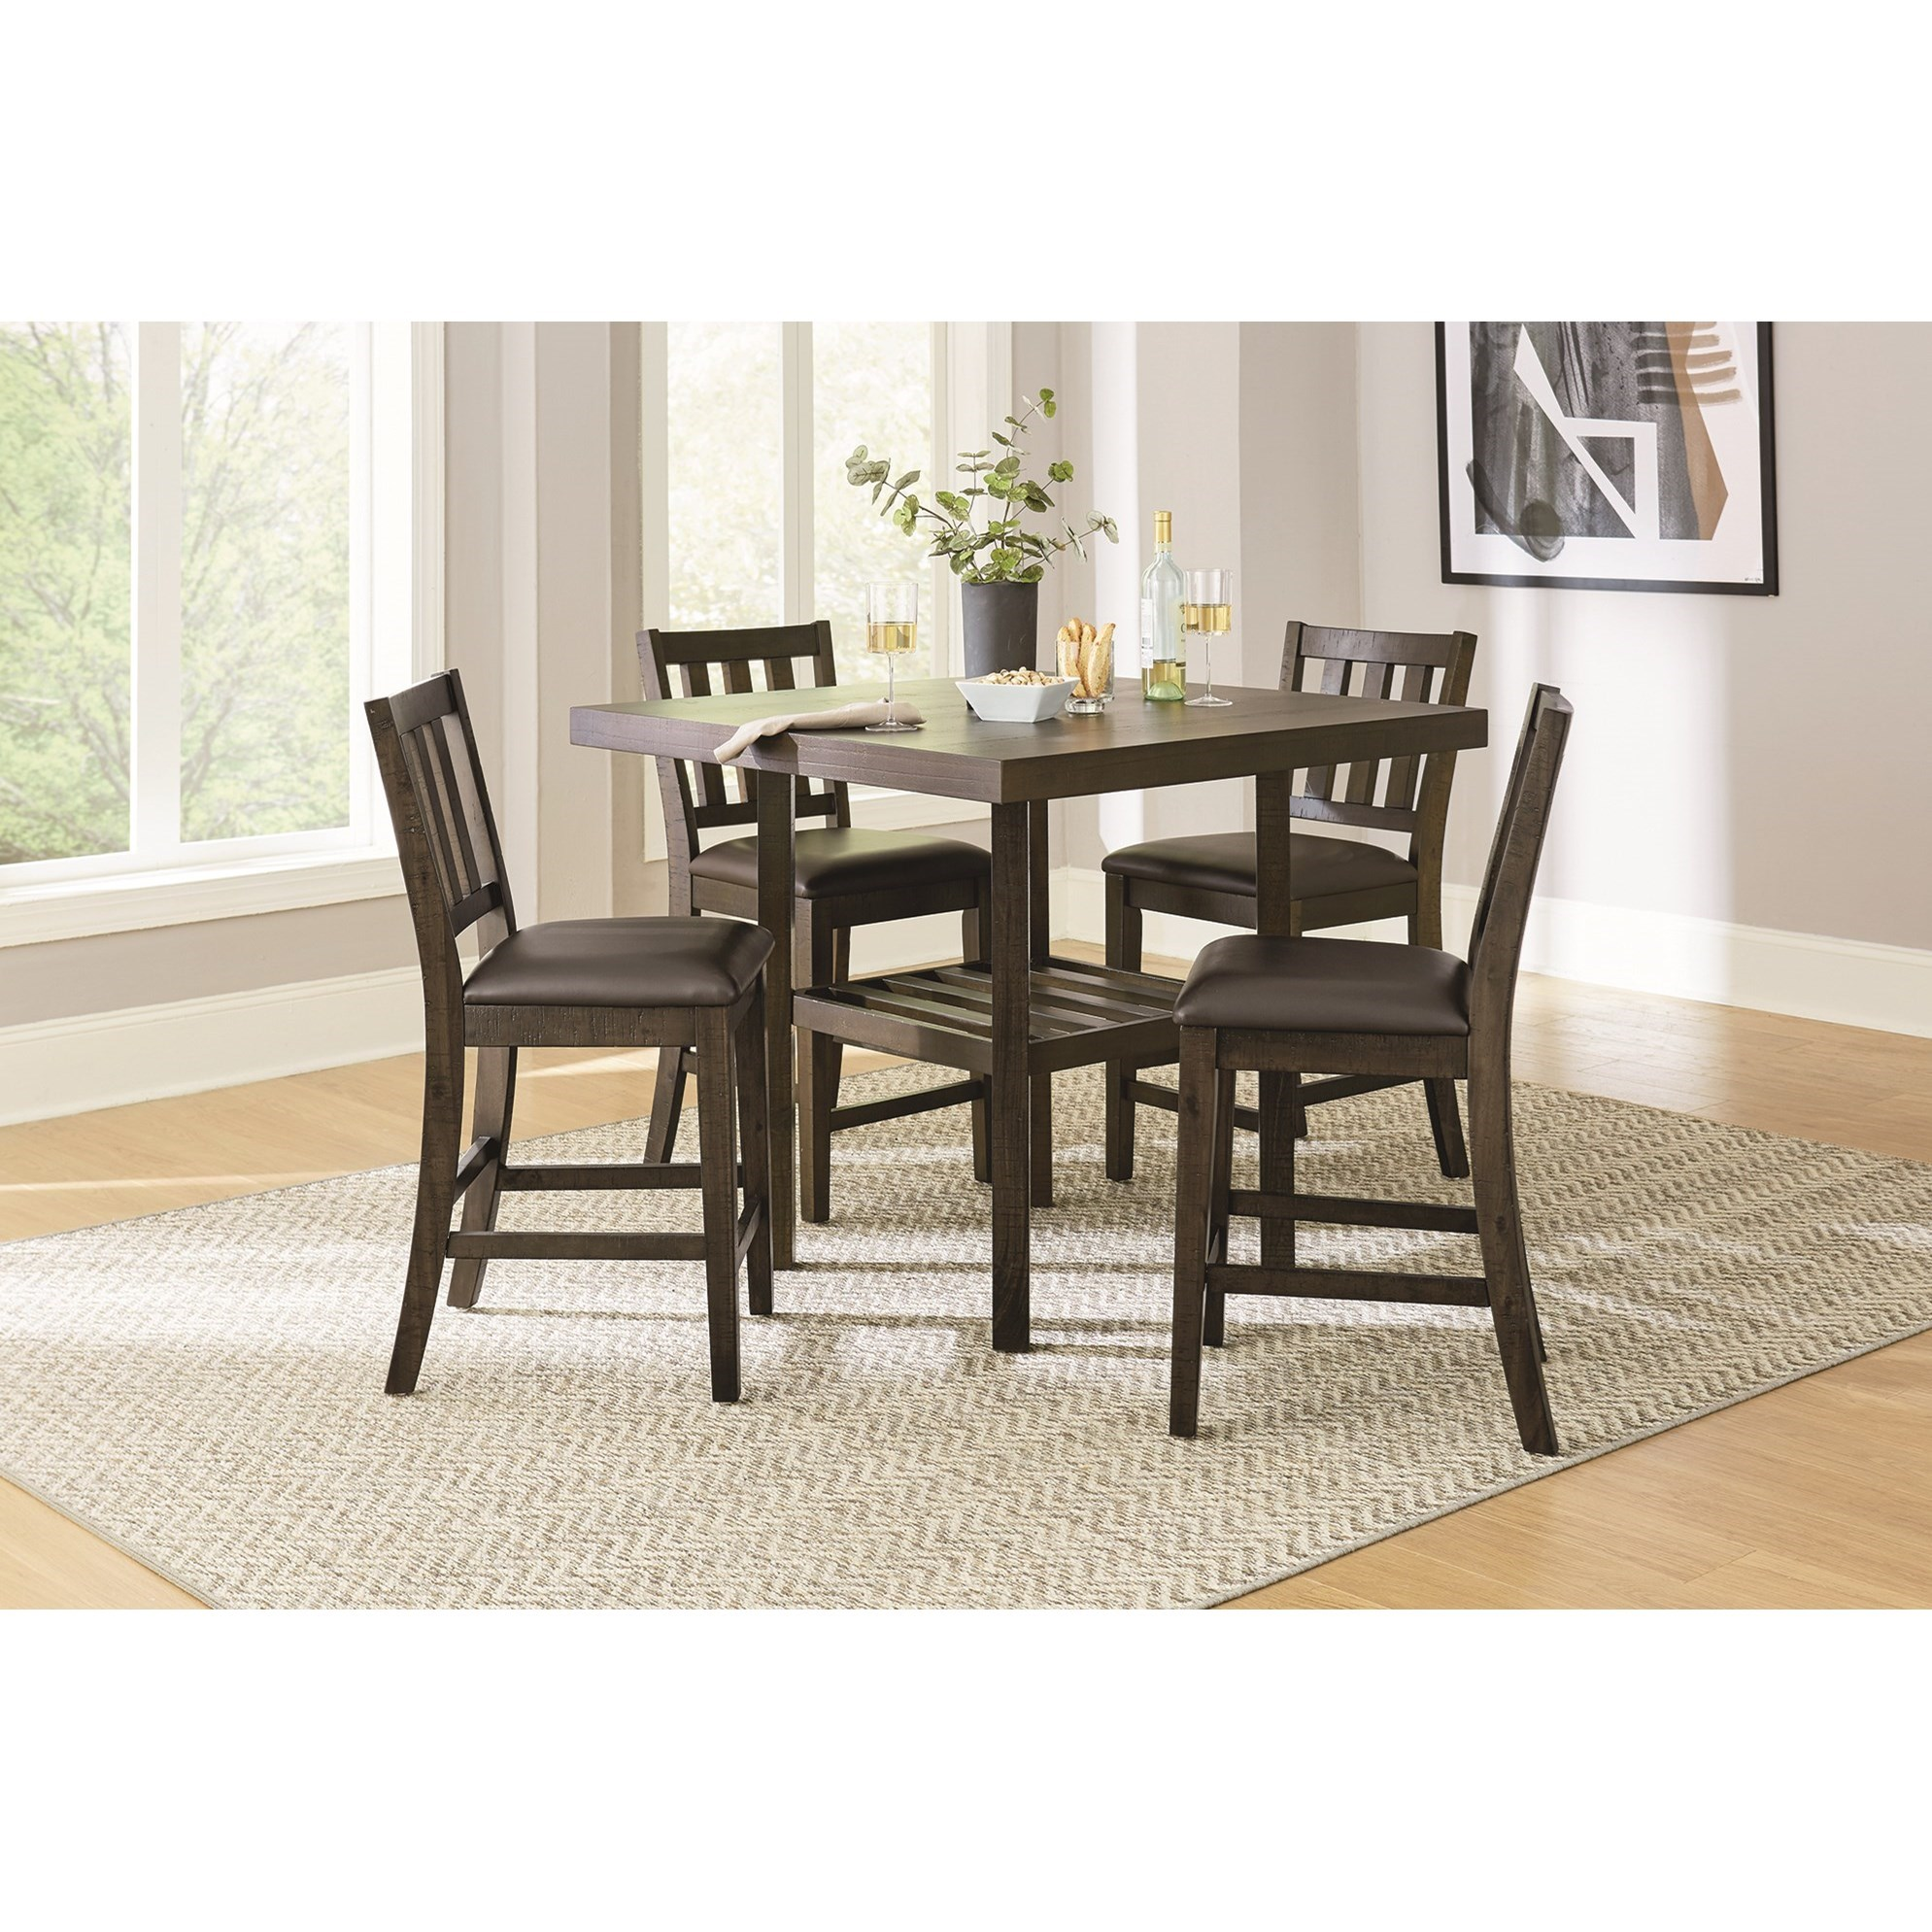 Arlo 5-Piece Counter Height Dining Set by Standard Furniture at Beds N Stuff